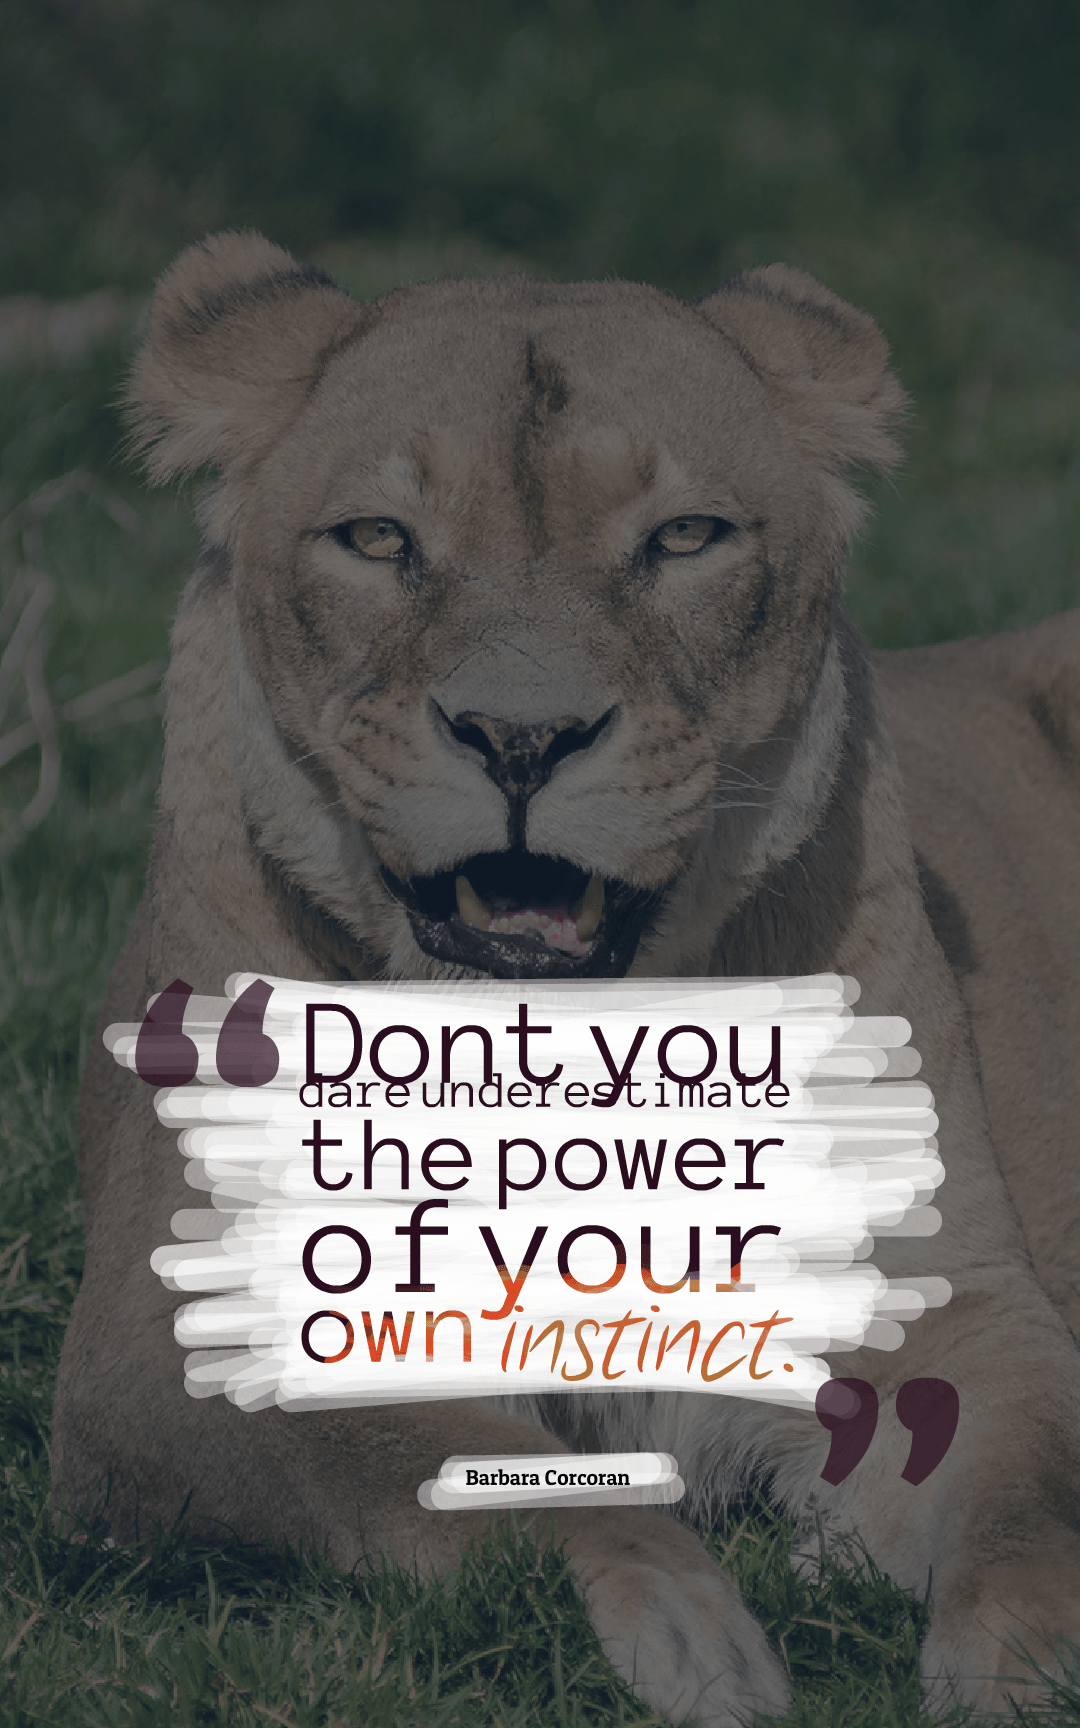 hi-res image of Dont you dare underestimate the power of your own instinct.